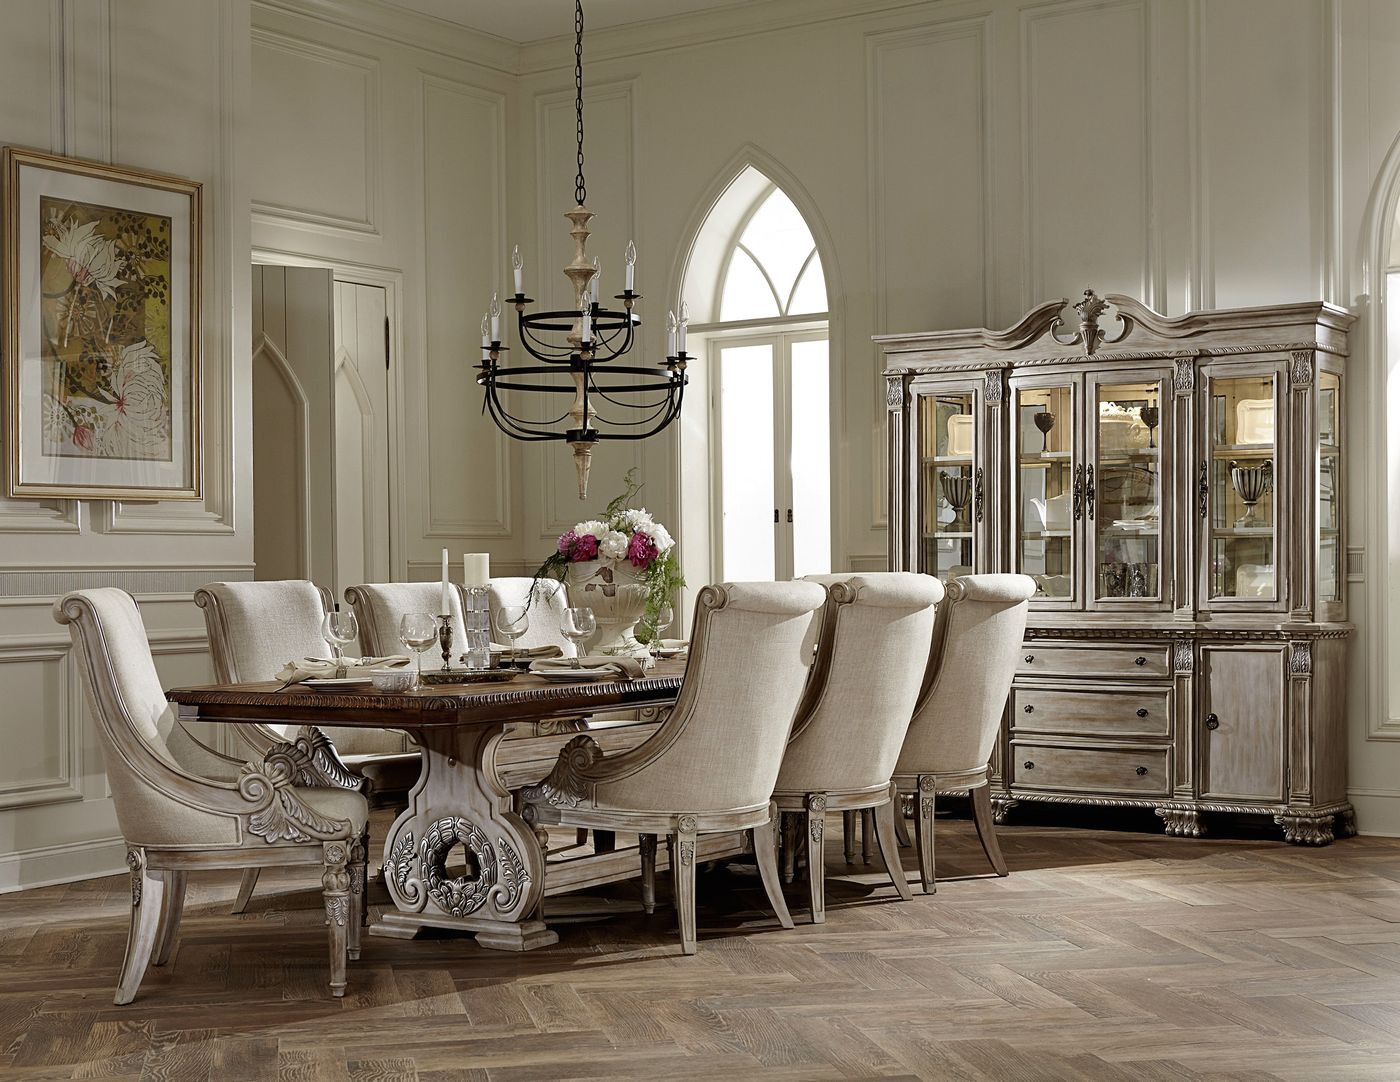 Best ideas about Dining Room Furniture . Save or Pin Orleans II White Wash Traditional Formal Dining Room Now.